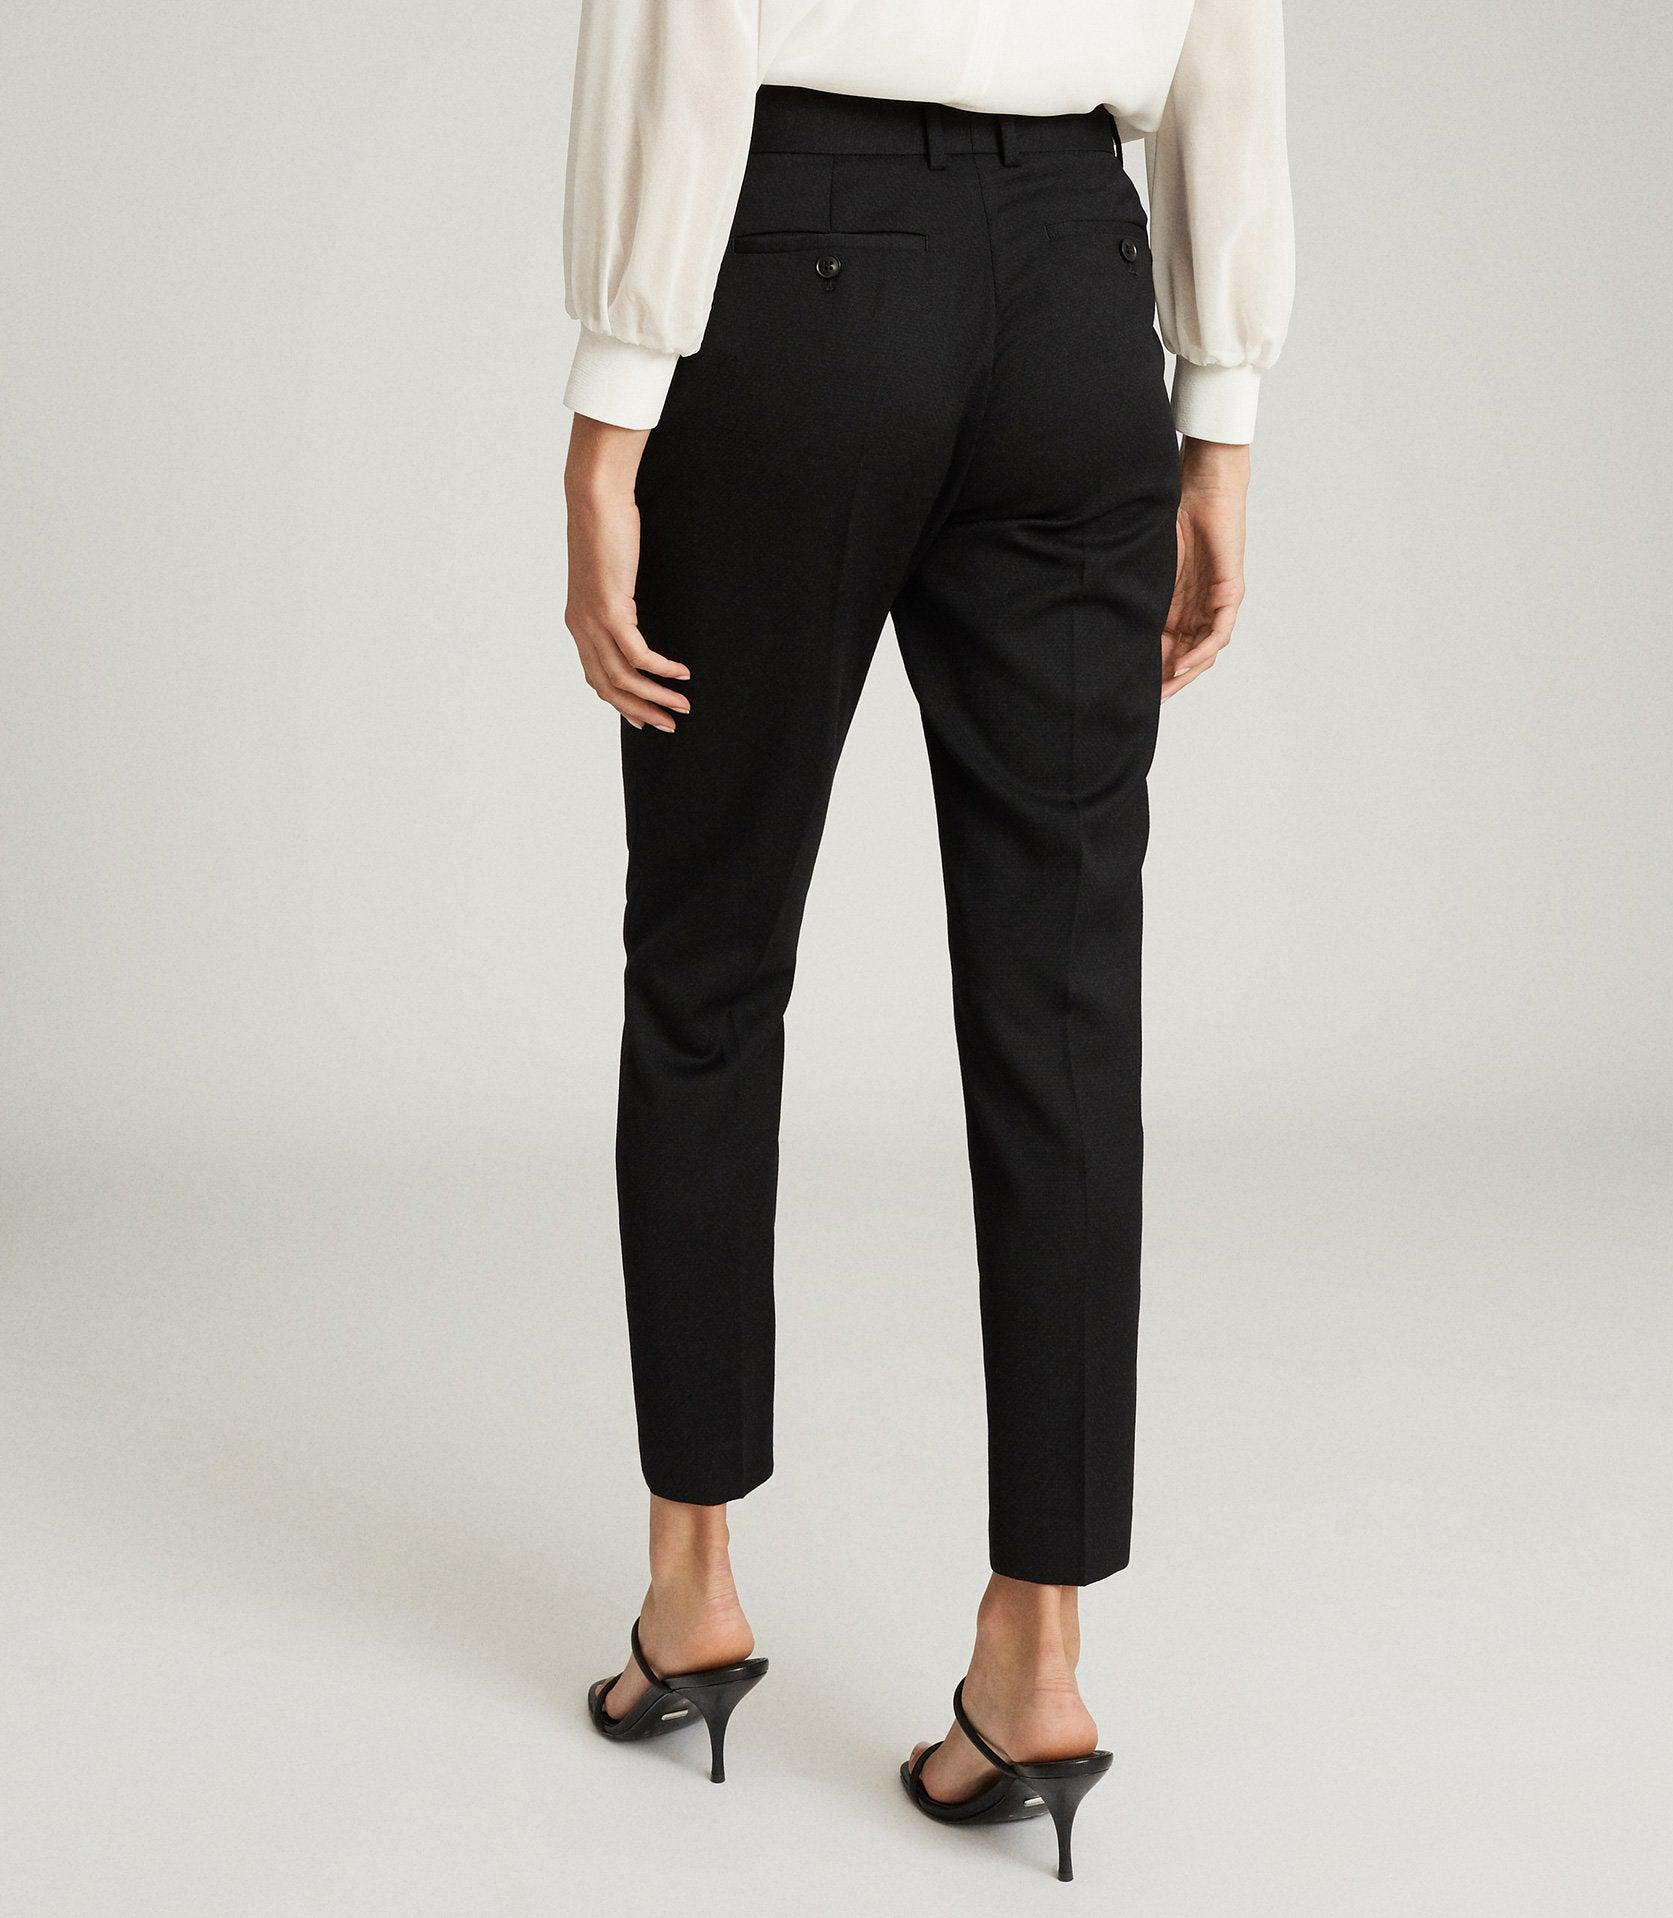 HAYES - SLIM FIT TAILORED PANTS 2